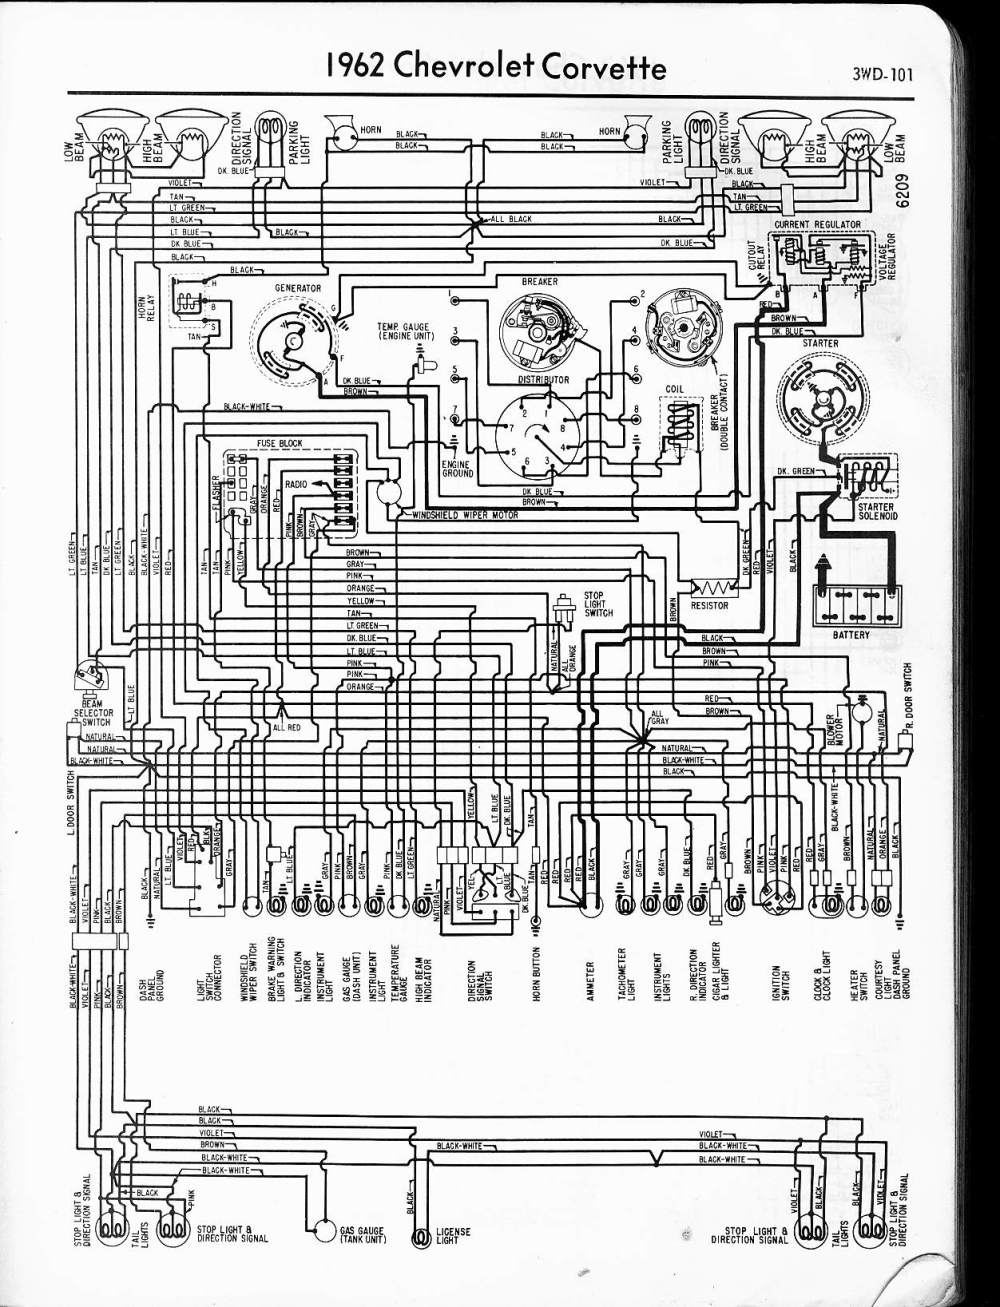 medium resolution of 63 impala ignition wiring diagram automotive wiring diagrams 1964 chevy c10 wiring diagram 61 chevy c10 wiring diagram